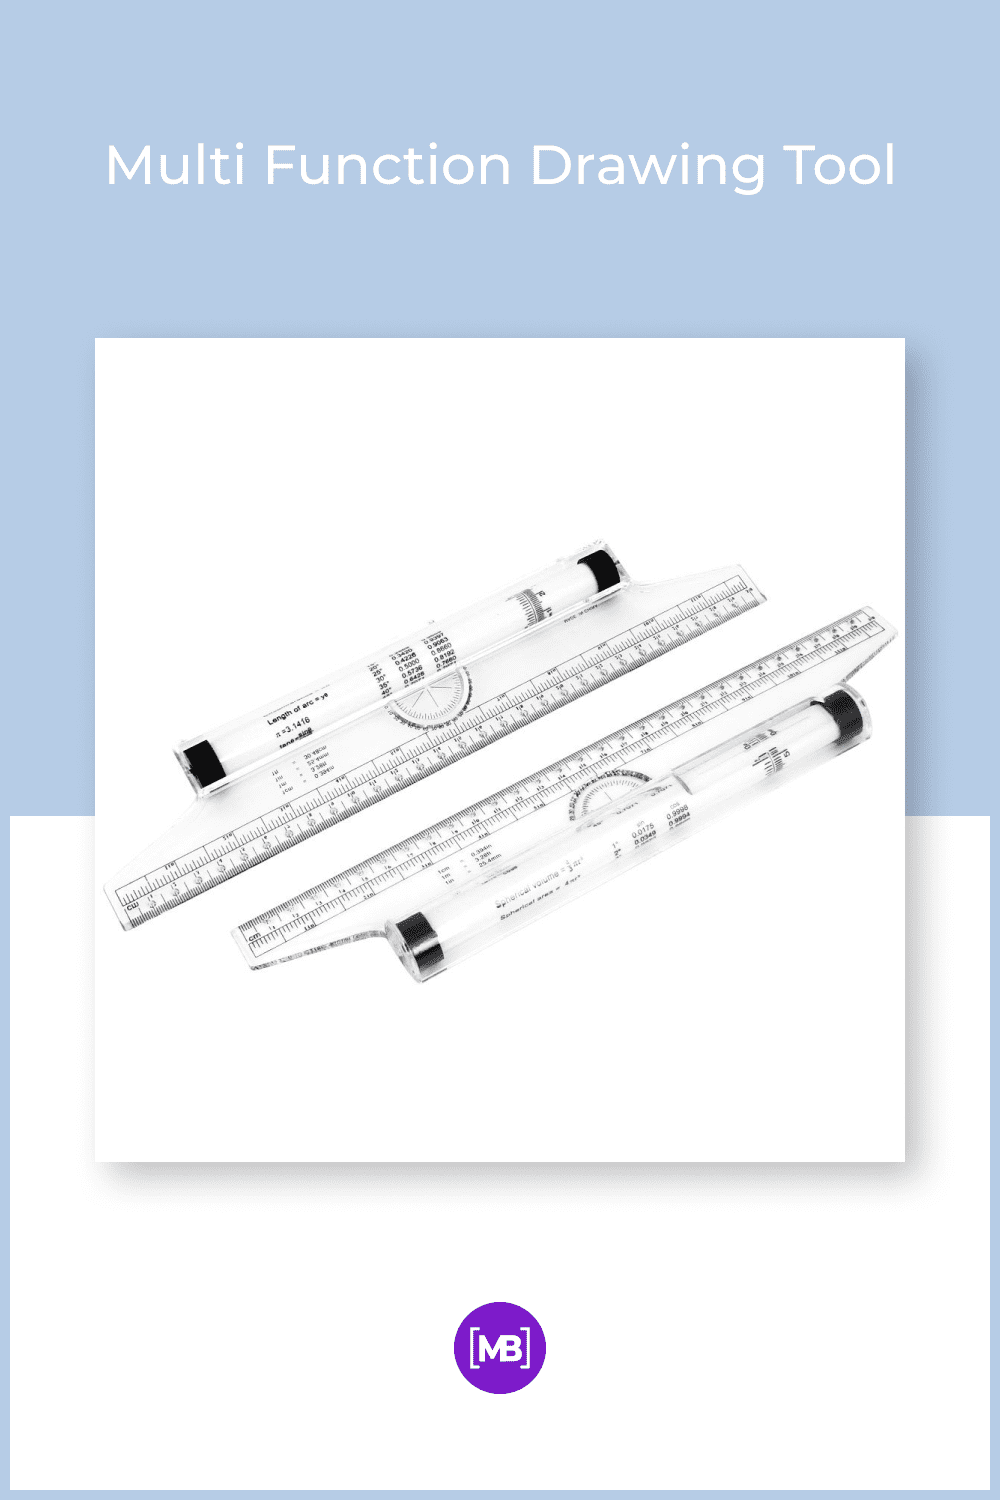 An easy-to-use instrument that combines the functions of a parallel straightedge, triangle, protractor, T-square, and compass in one.